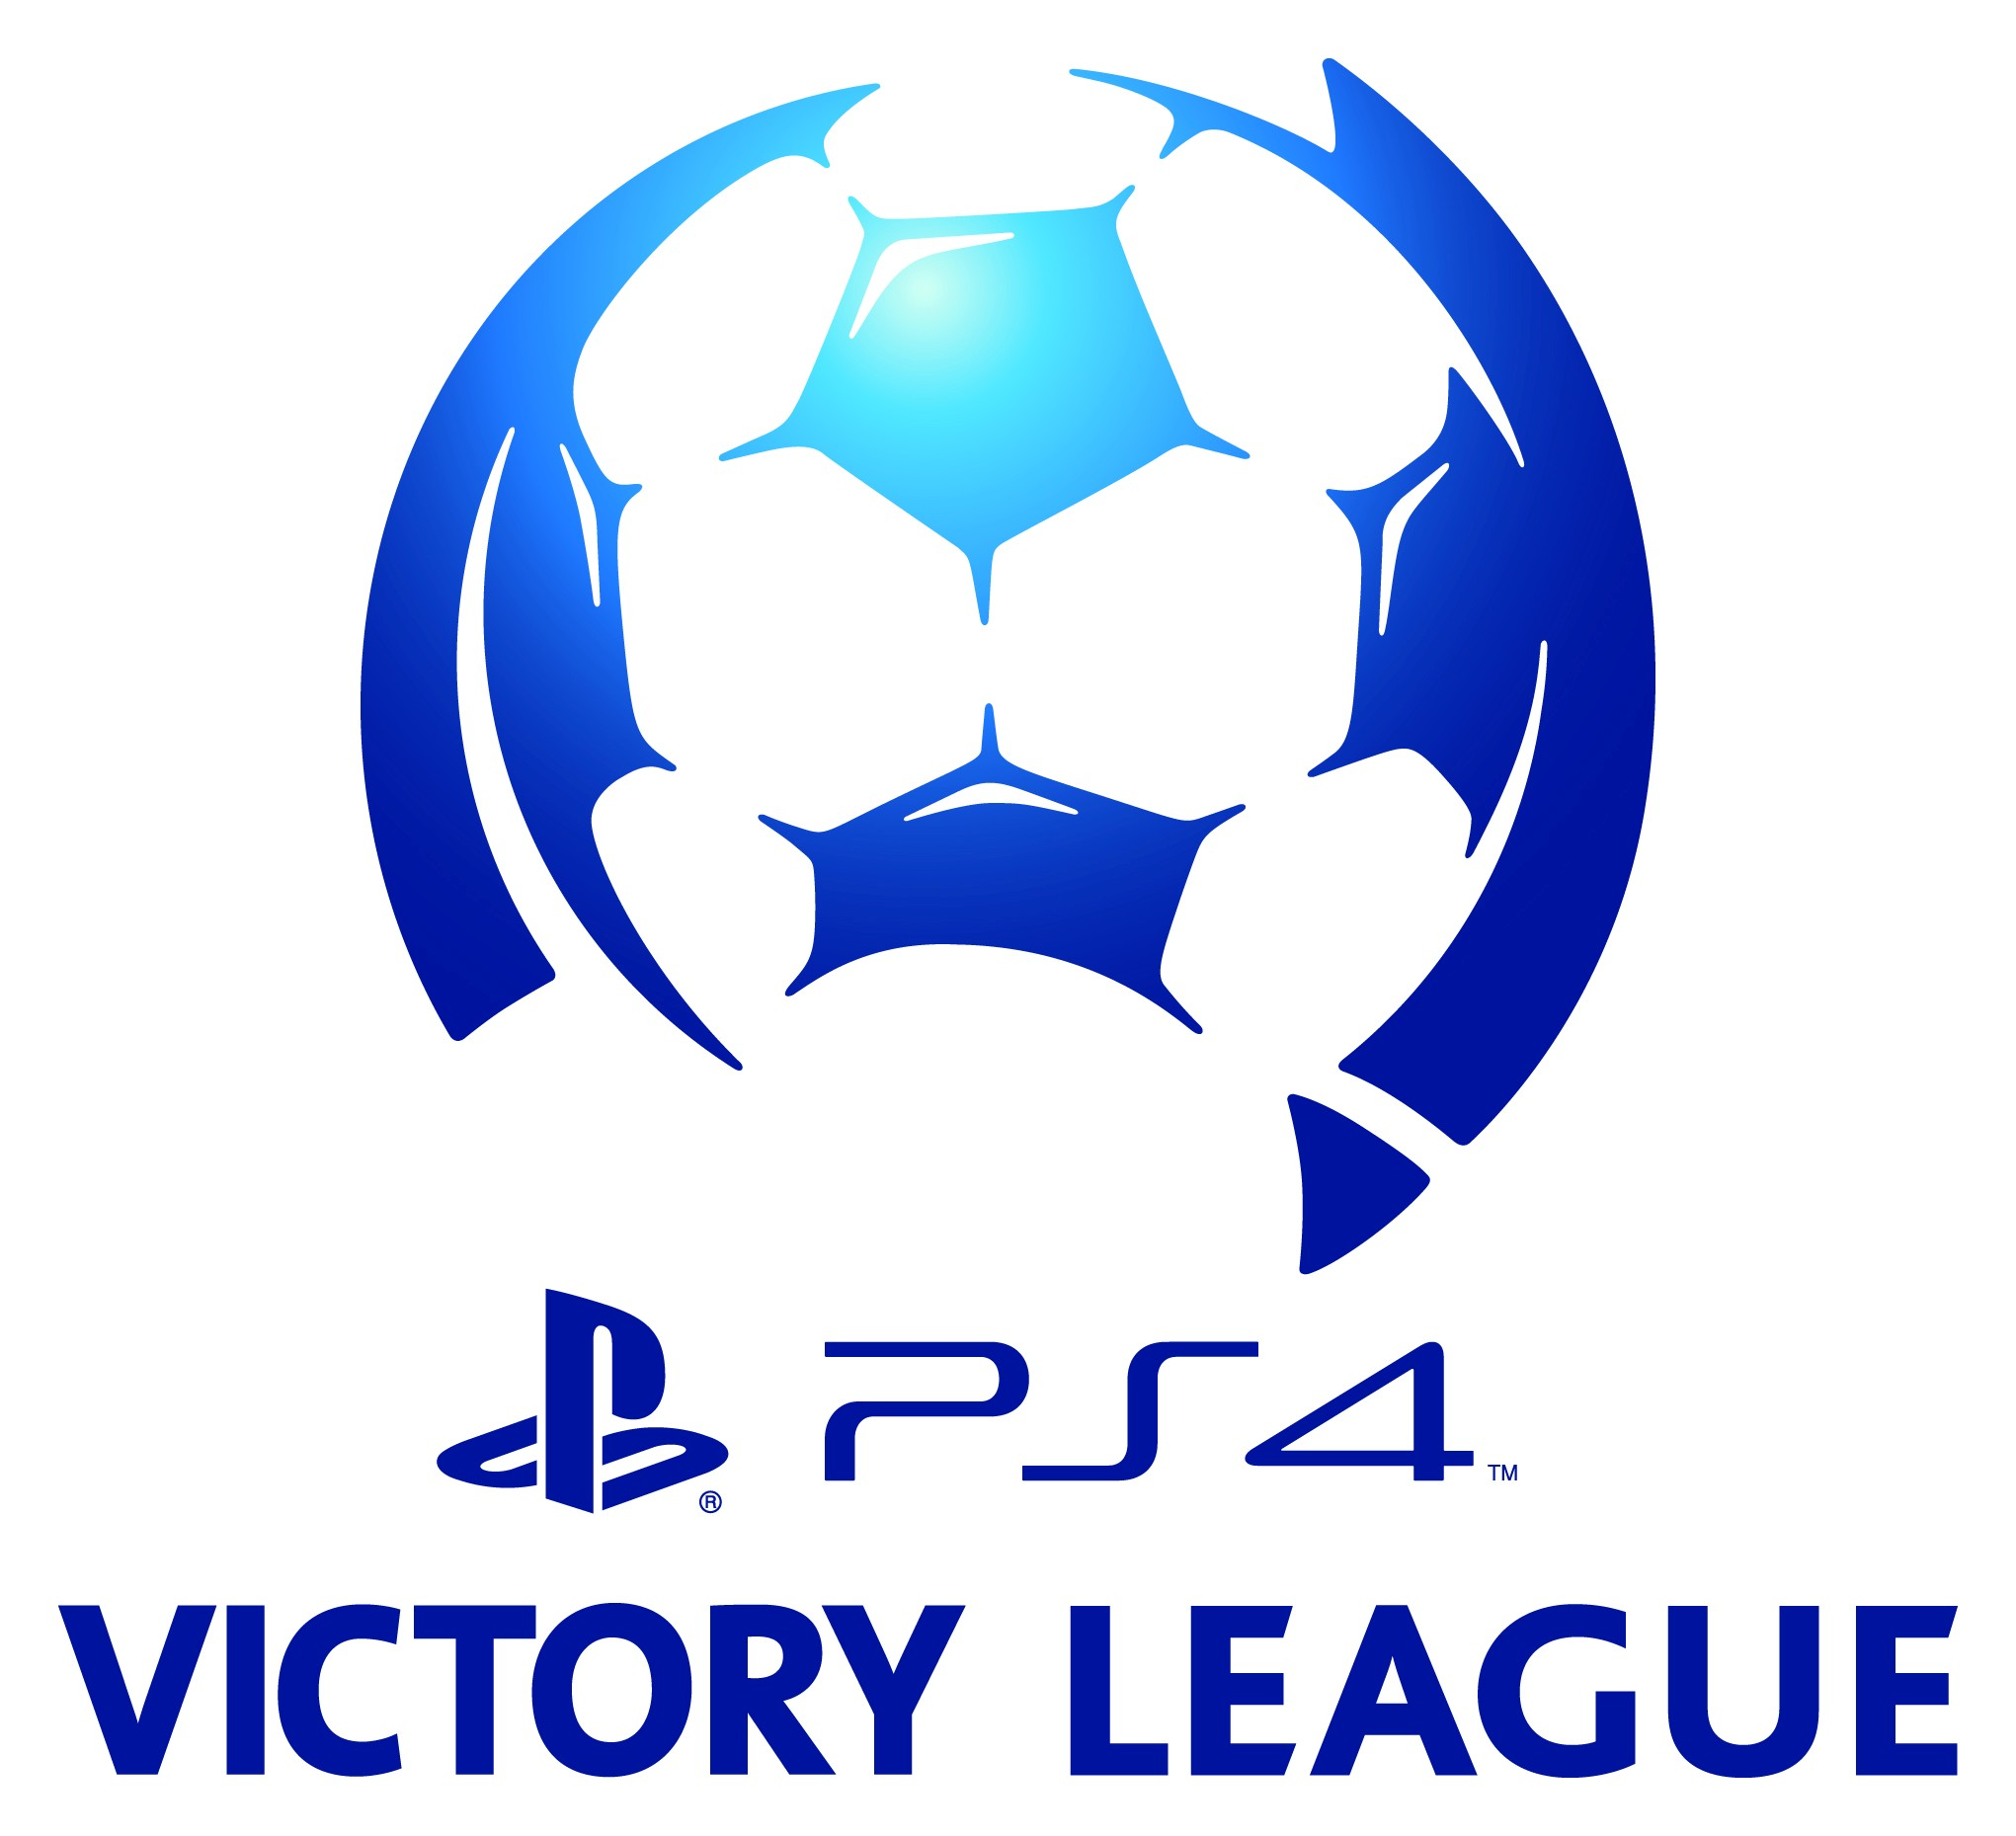 PS4 Victory League